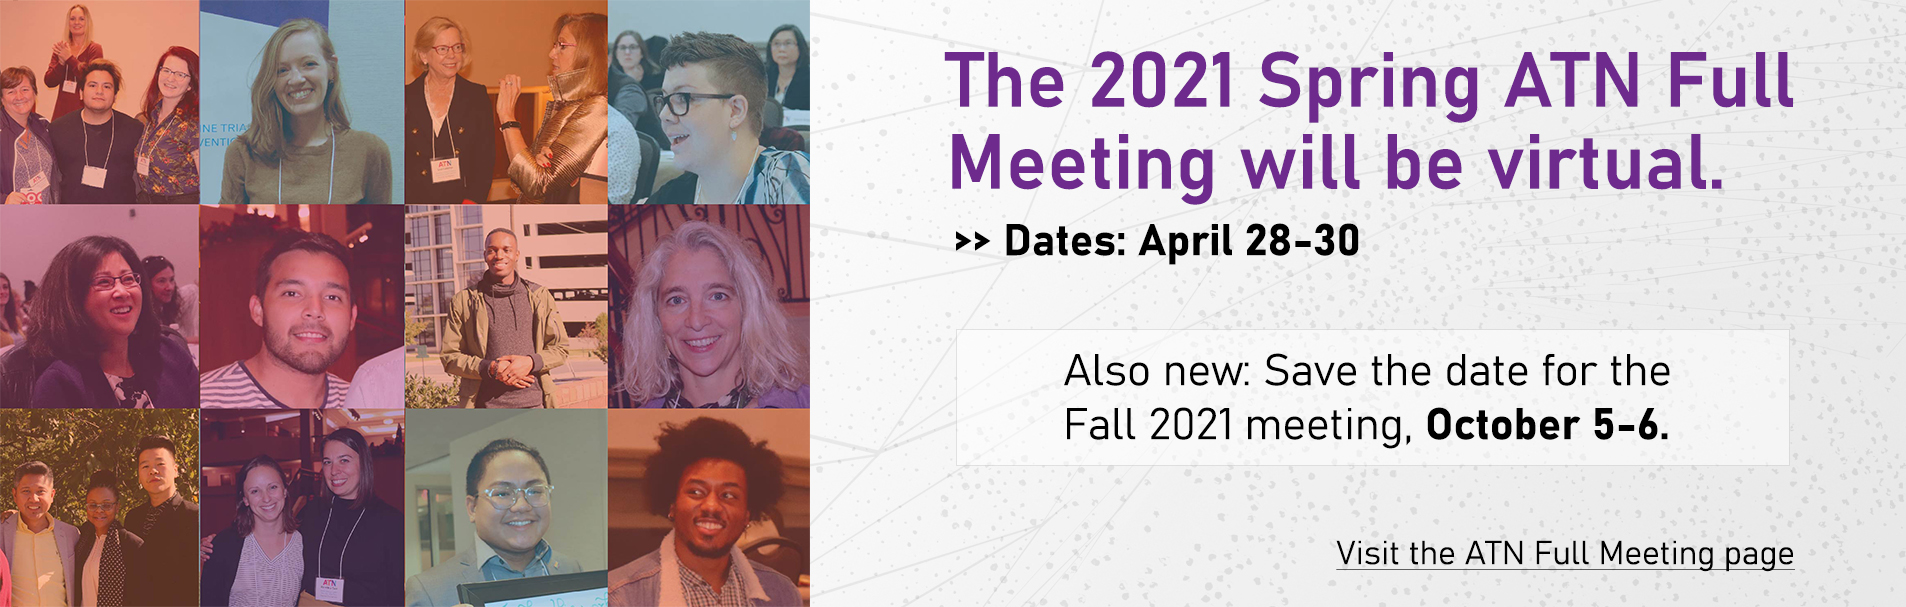 The 2021 Spring ATN Full Meeting will be virtual. Dates: April 28-30. Also new: Save the date for the Fall 2021 meeting, October 5-6. Visit the ATN Full Meeting page.